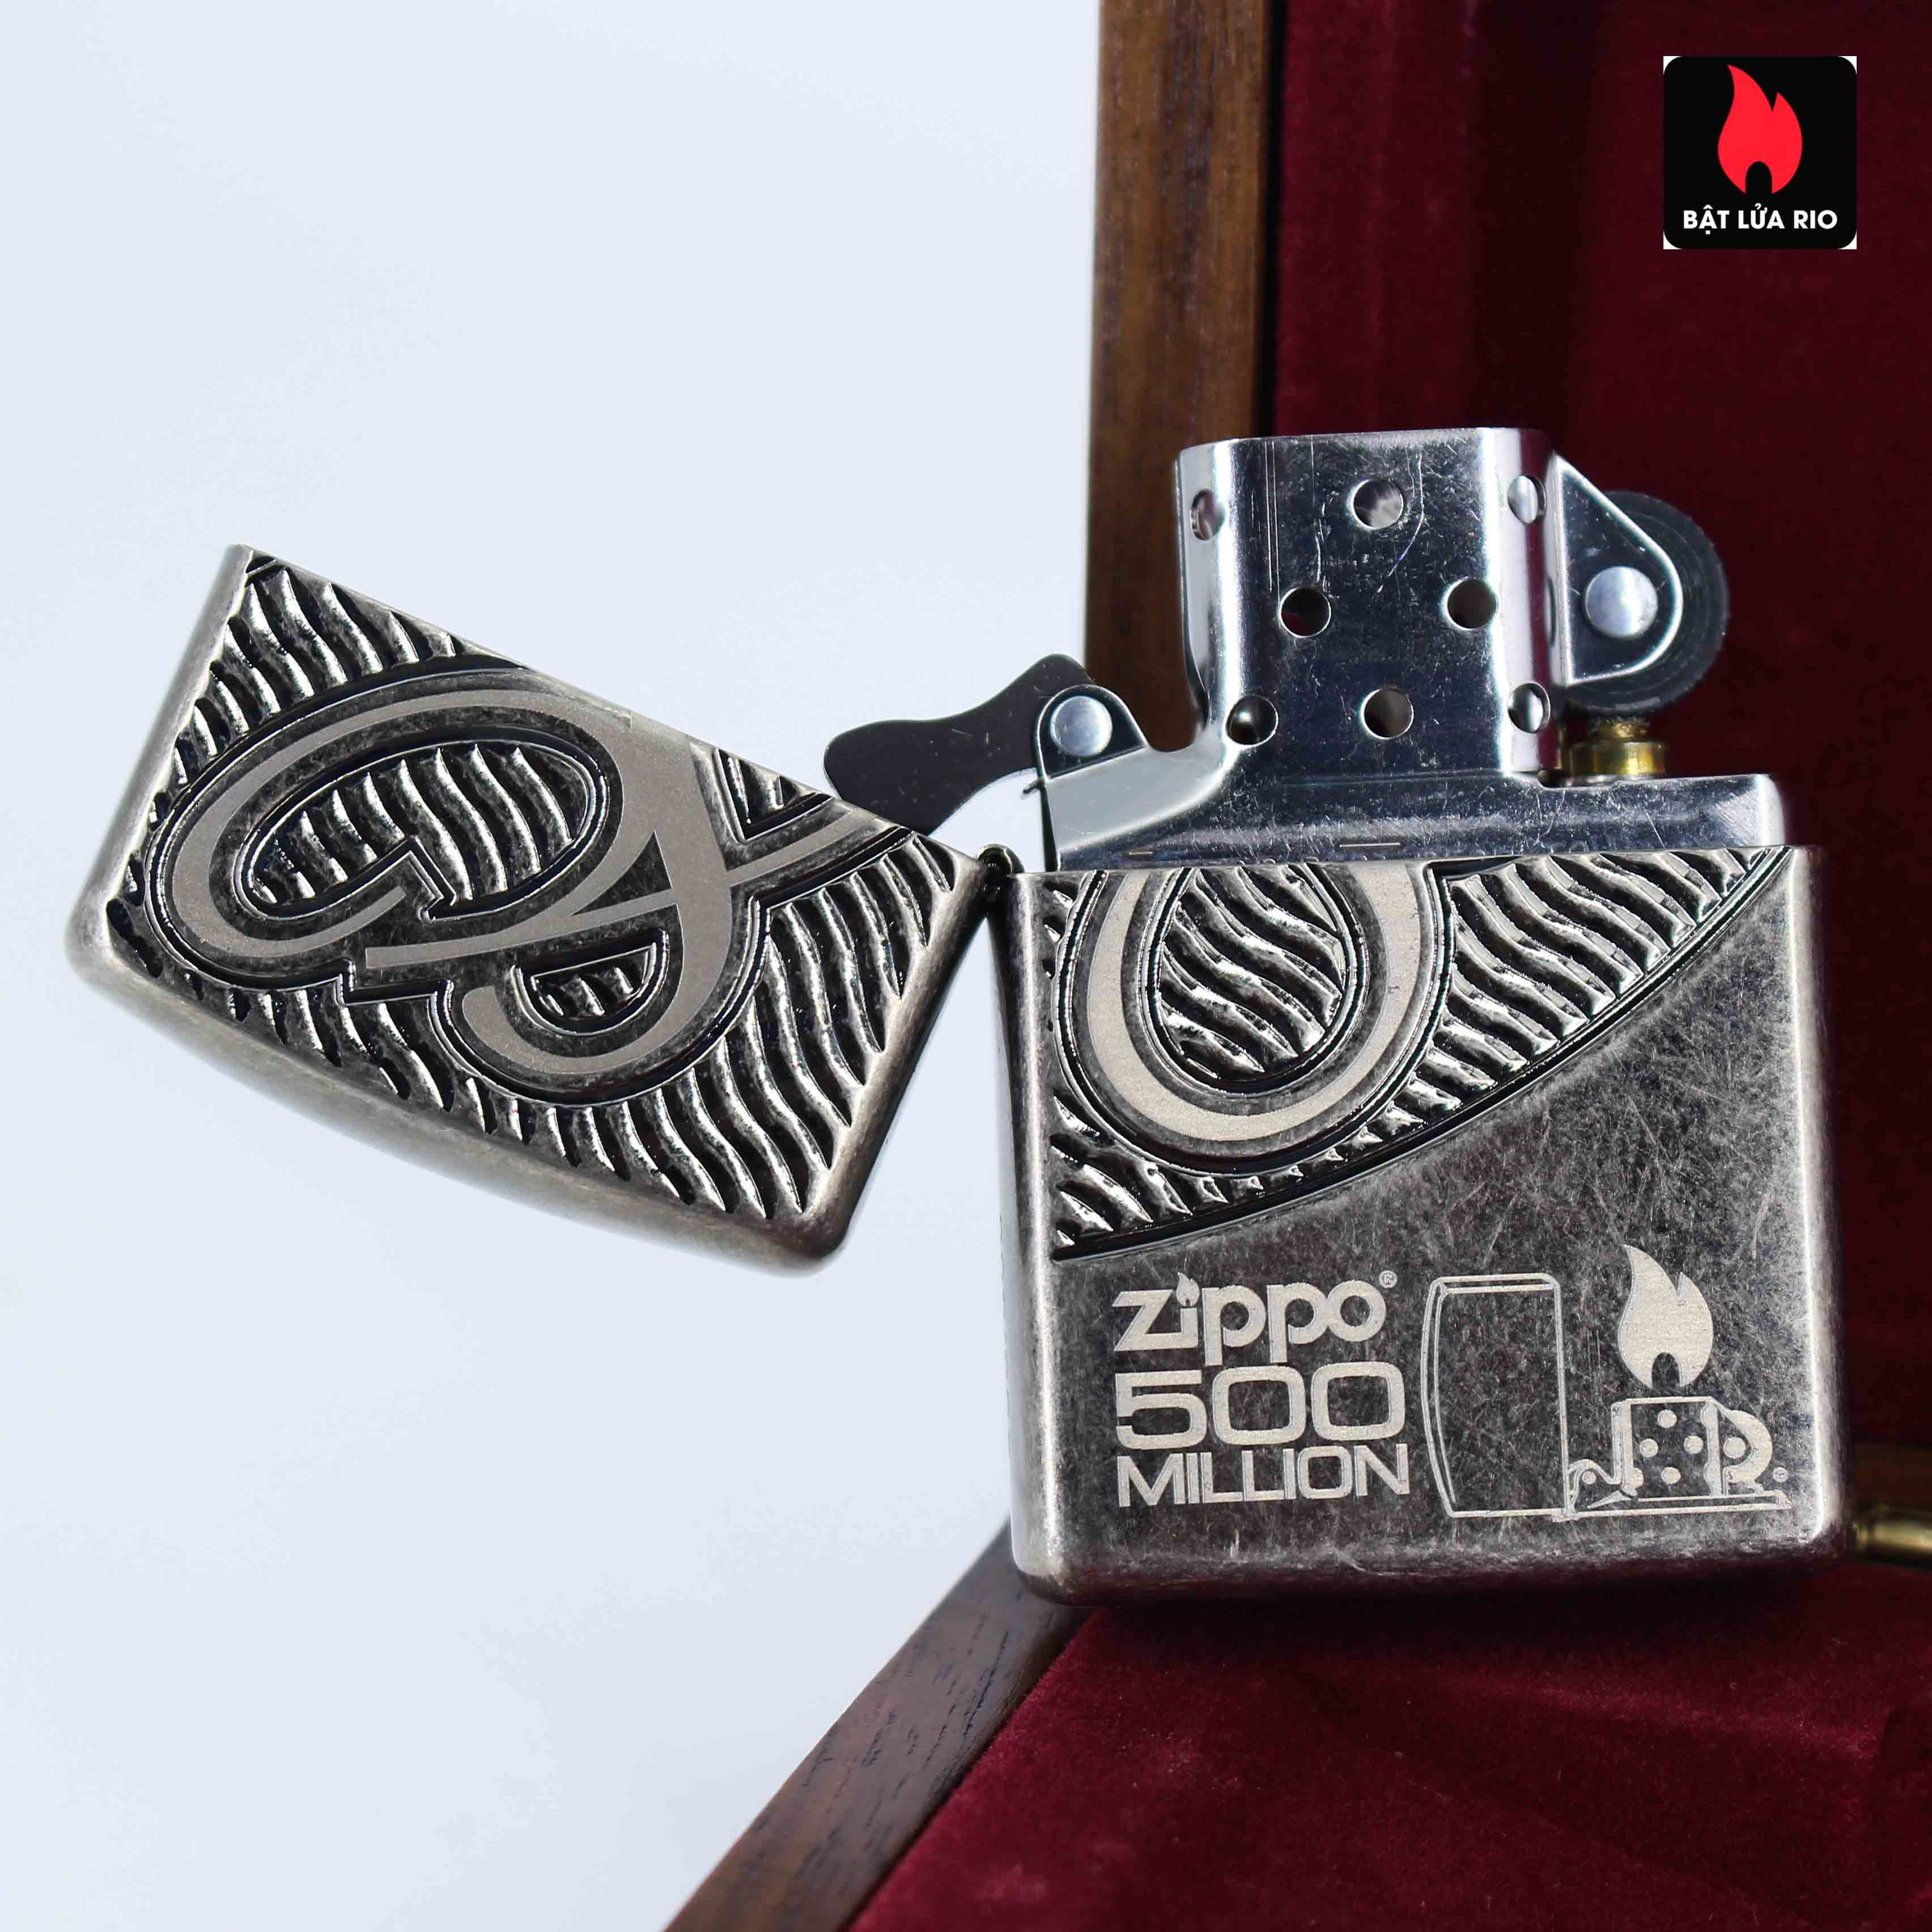 Zippo 2012 - 80th Anniversary and 500 Million - Limited 405/500 3